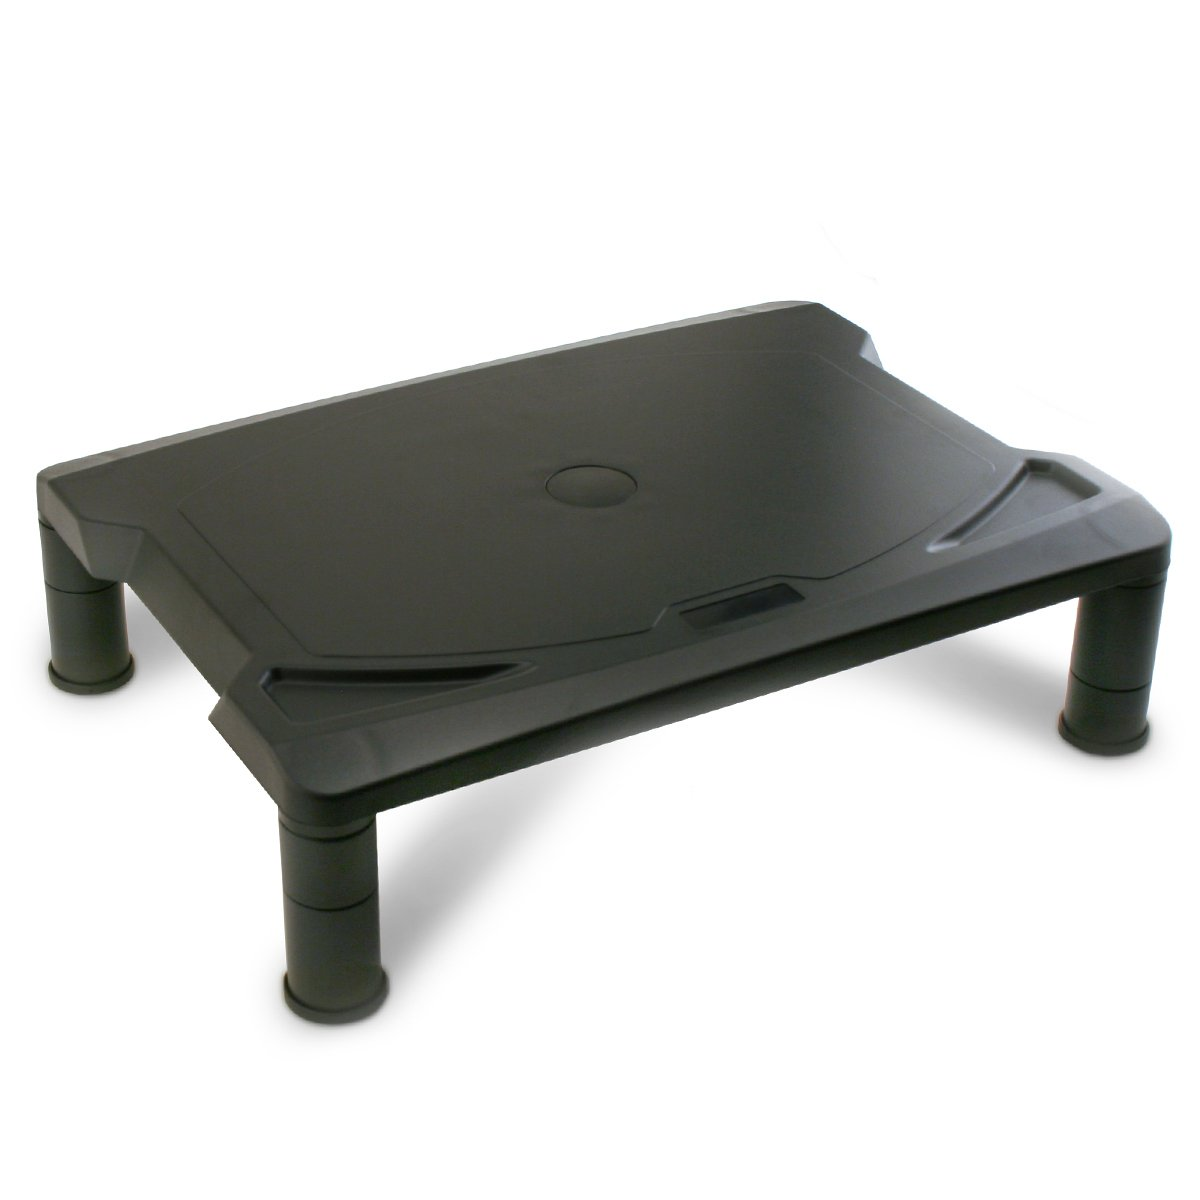 2 Lb. Depot Monitor Stand, Printer Stand with Adjustable 3 Heights Riser, 15.5 x 11.5 Inches, Black Plastic 2LB Depot